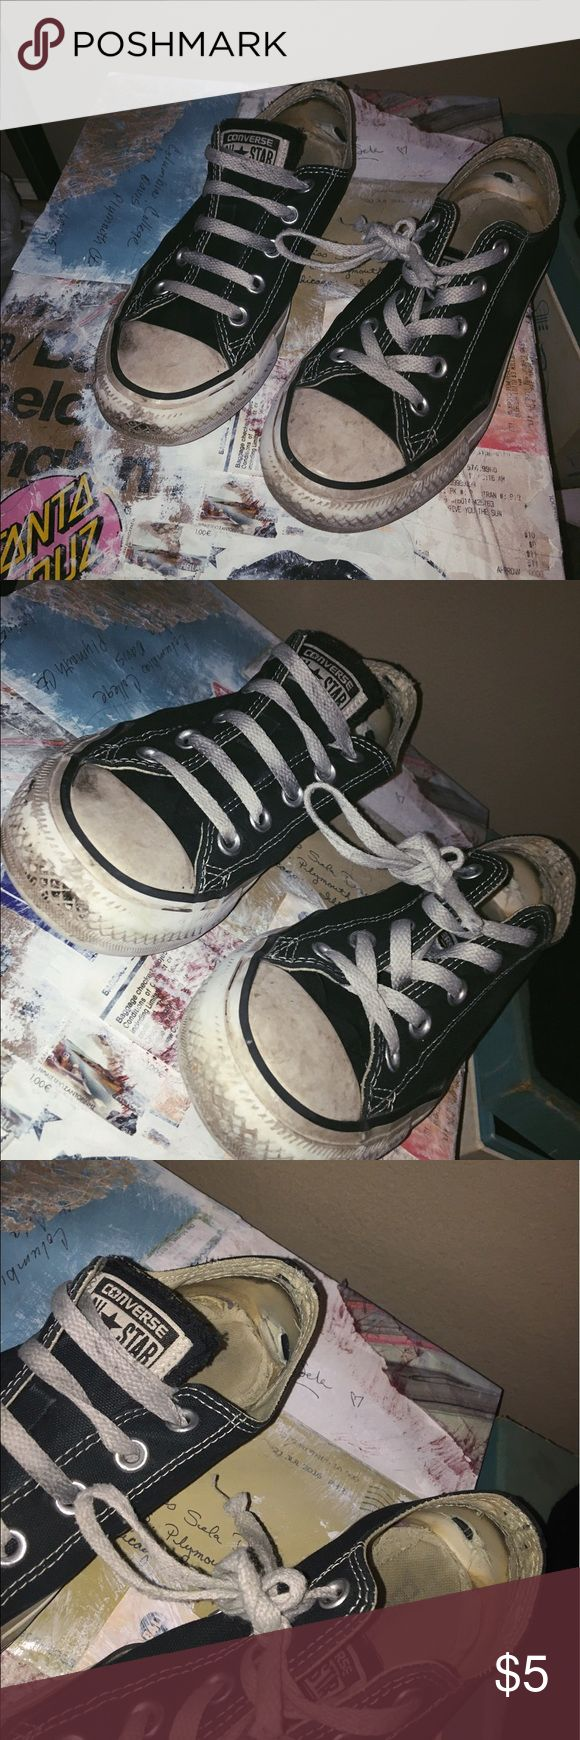 worn black low top converse size 6 pretty worn converse! black low tops size 6. reasonable offers are welcome Converse Shoes Sneakers